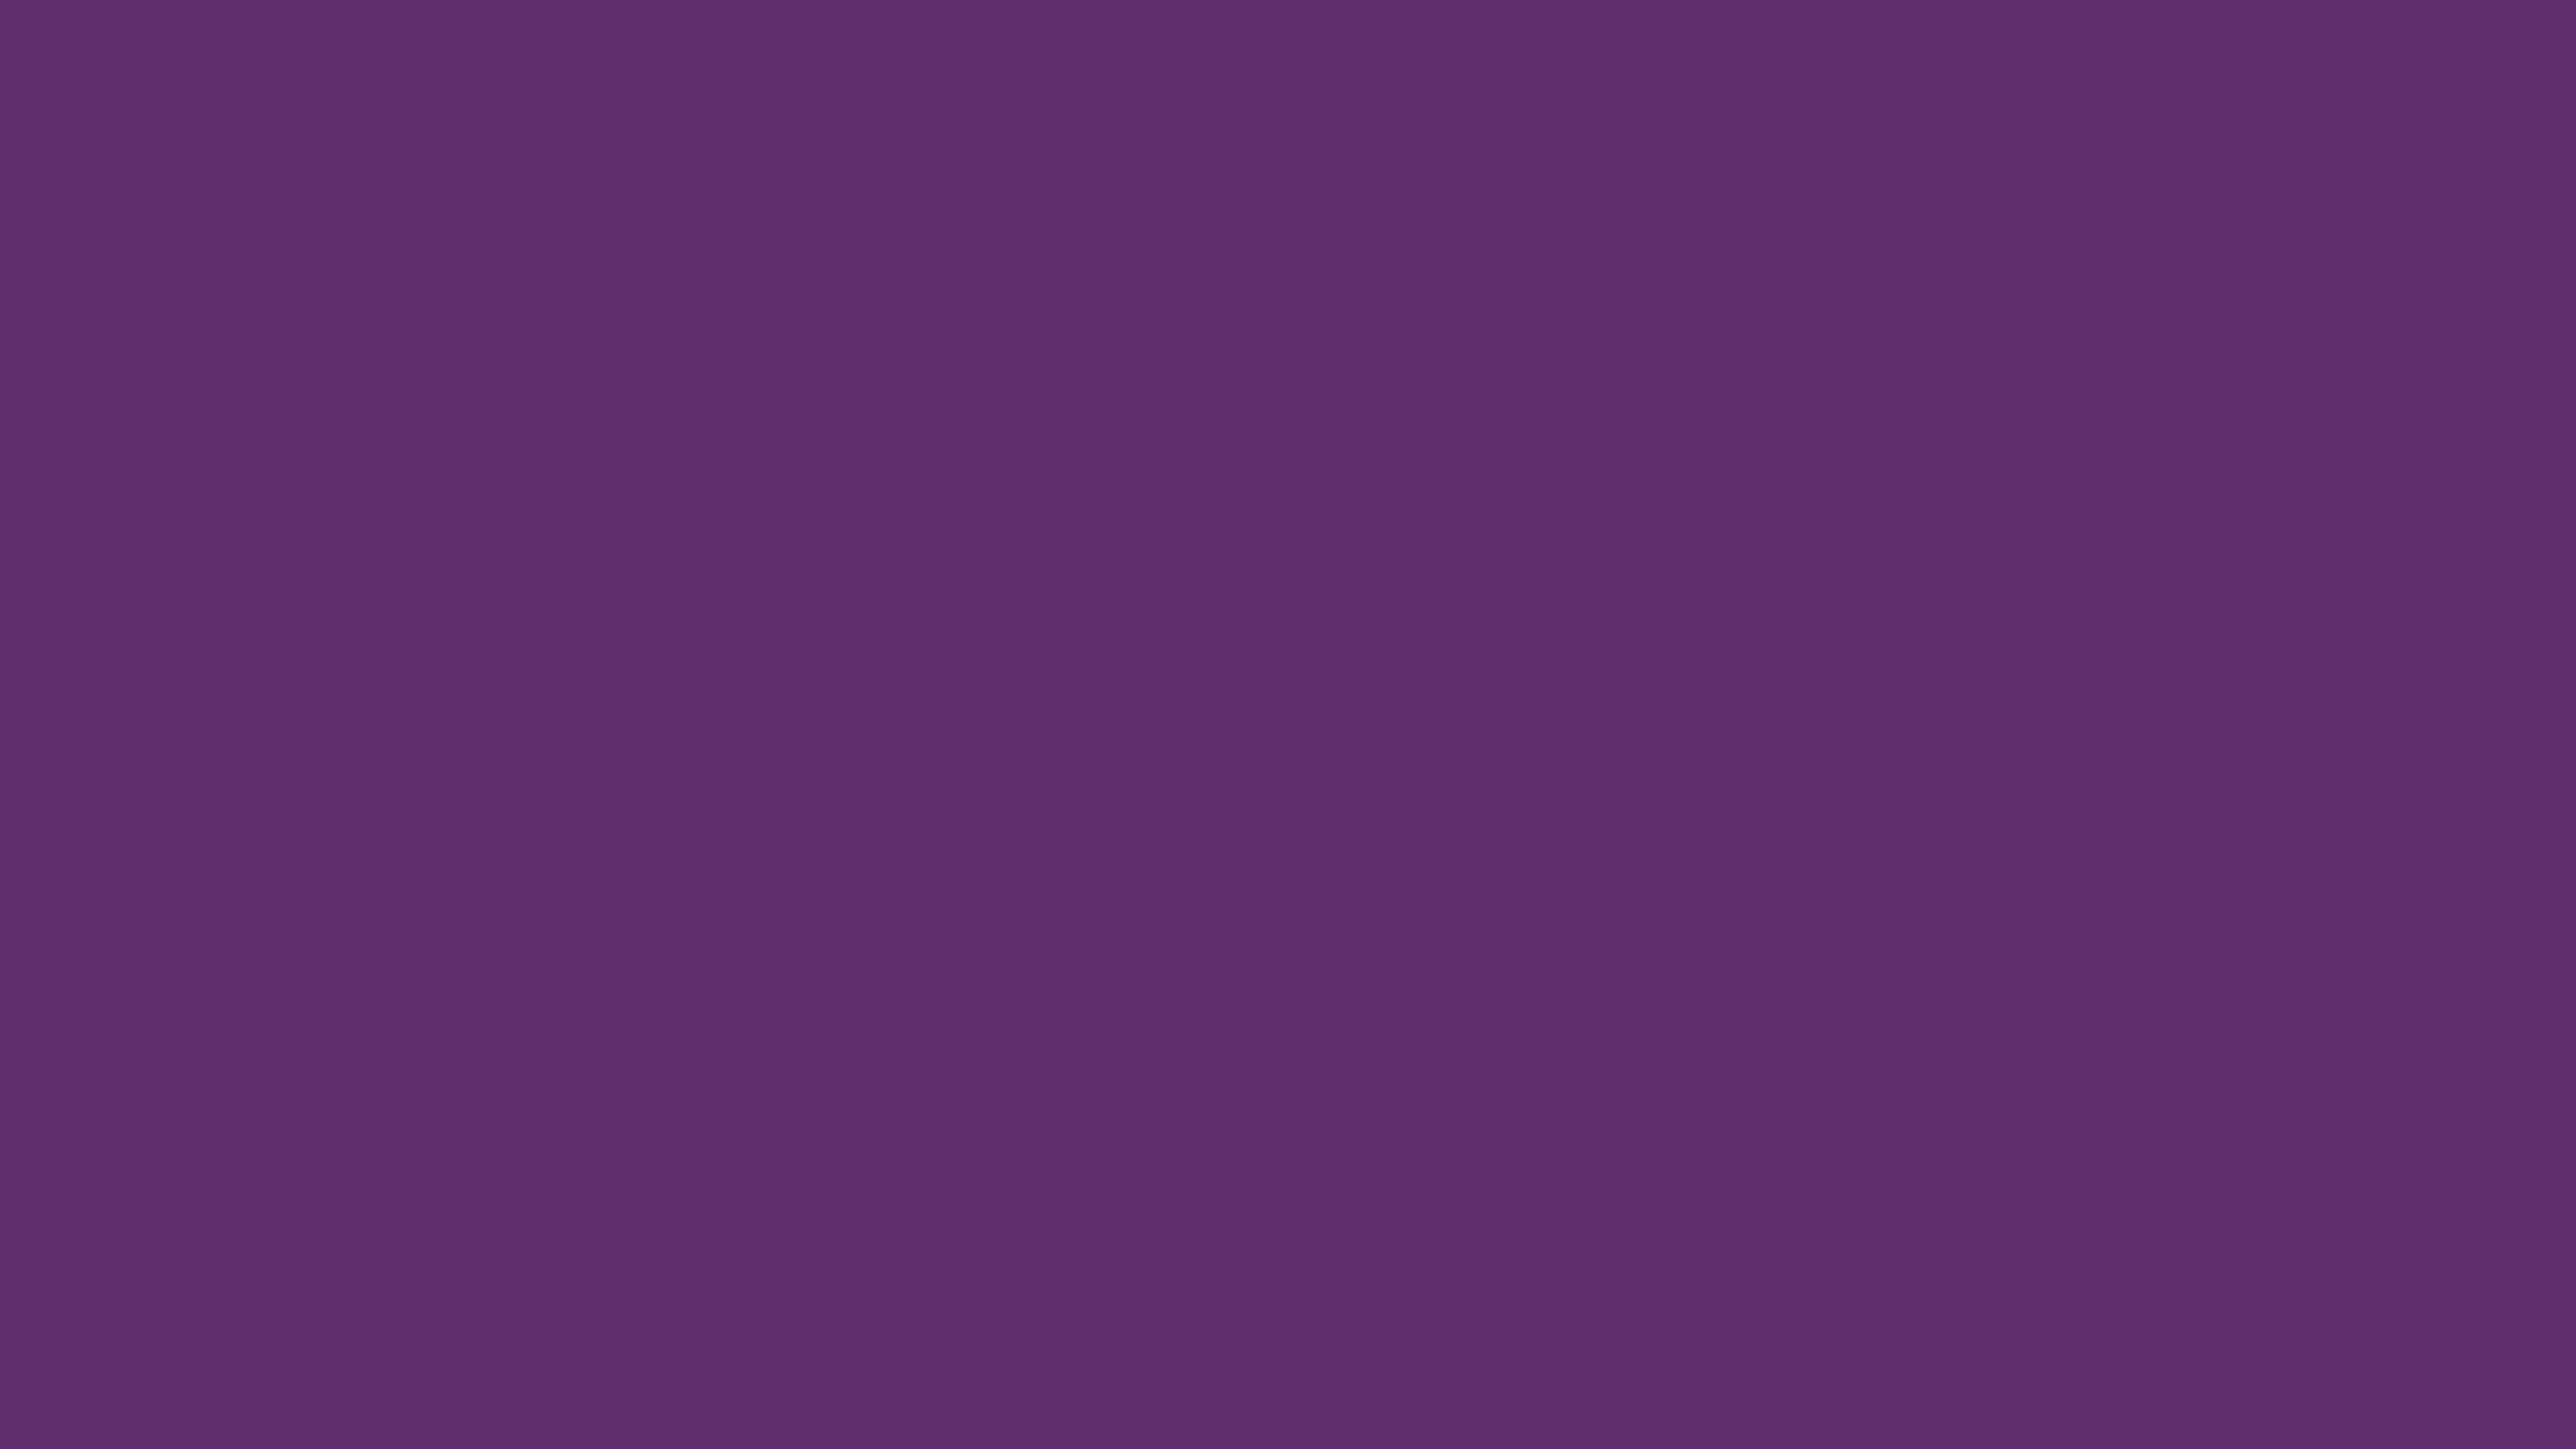 5120x2880 Imperial Solid Color Background